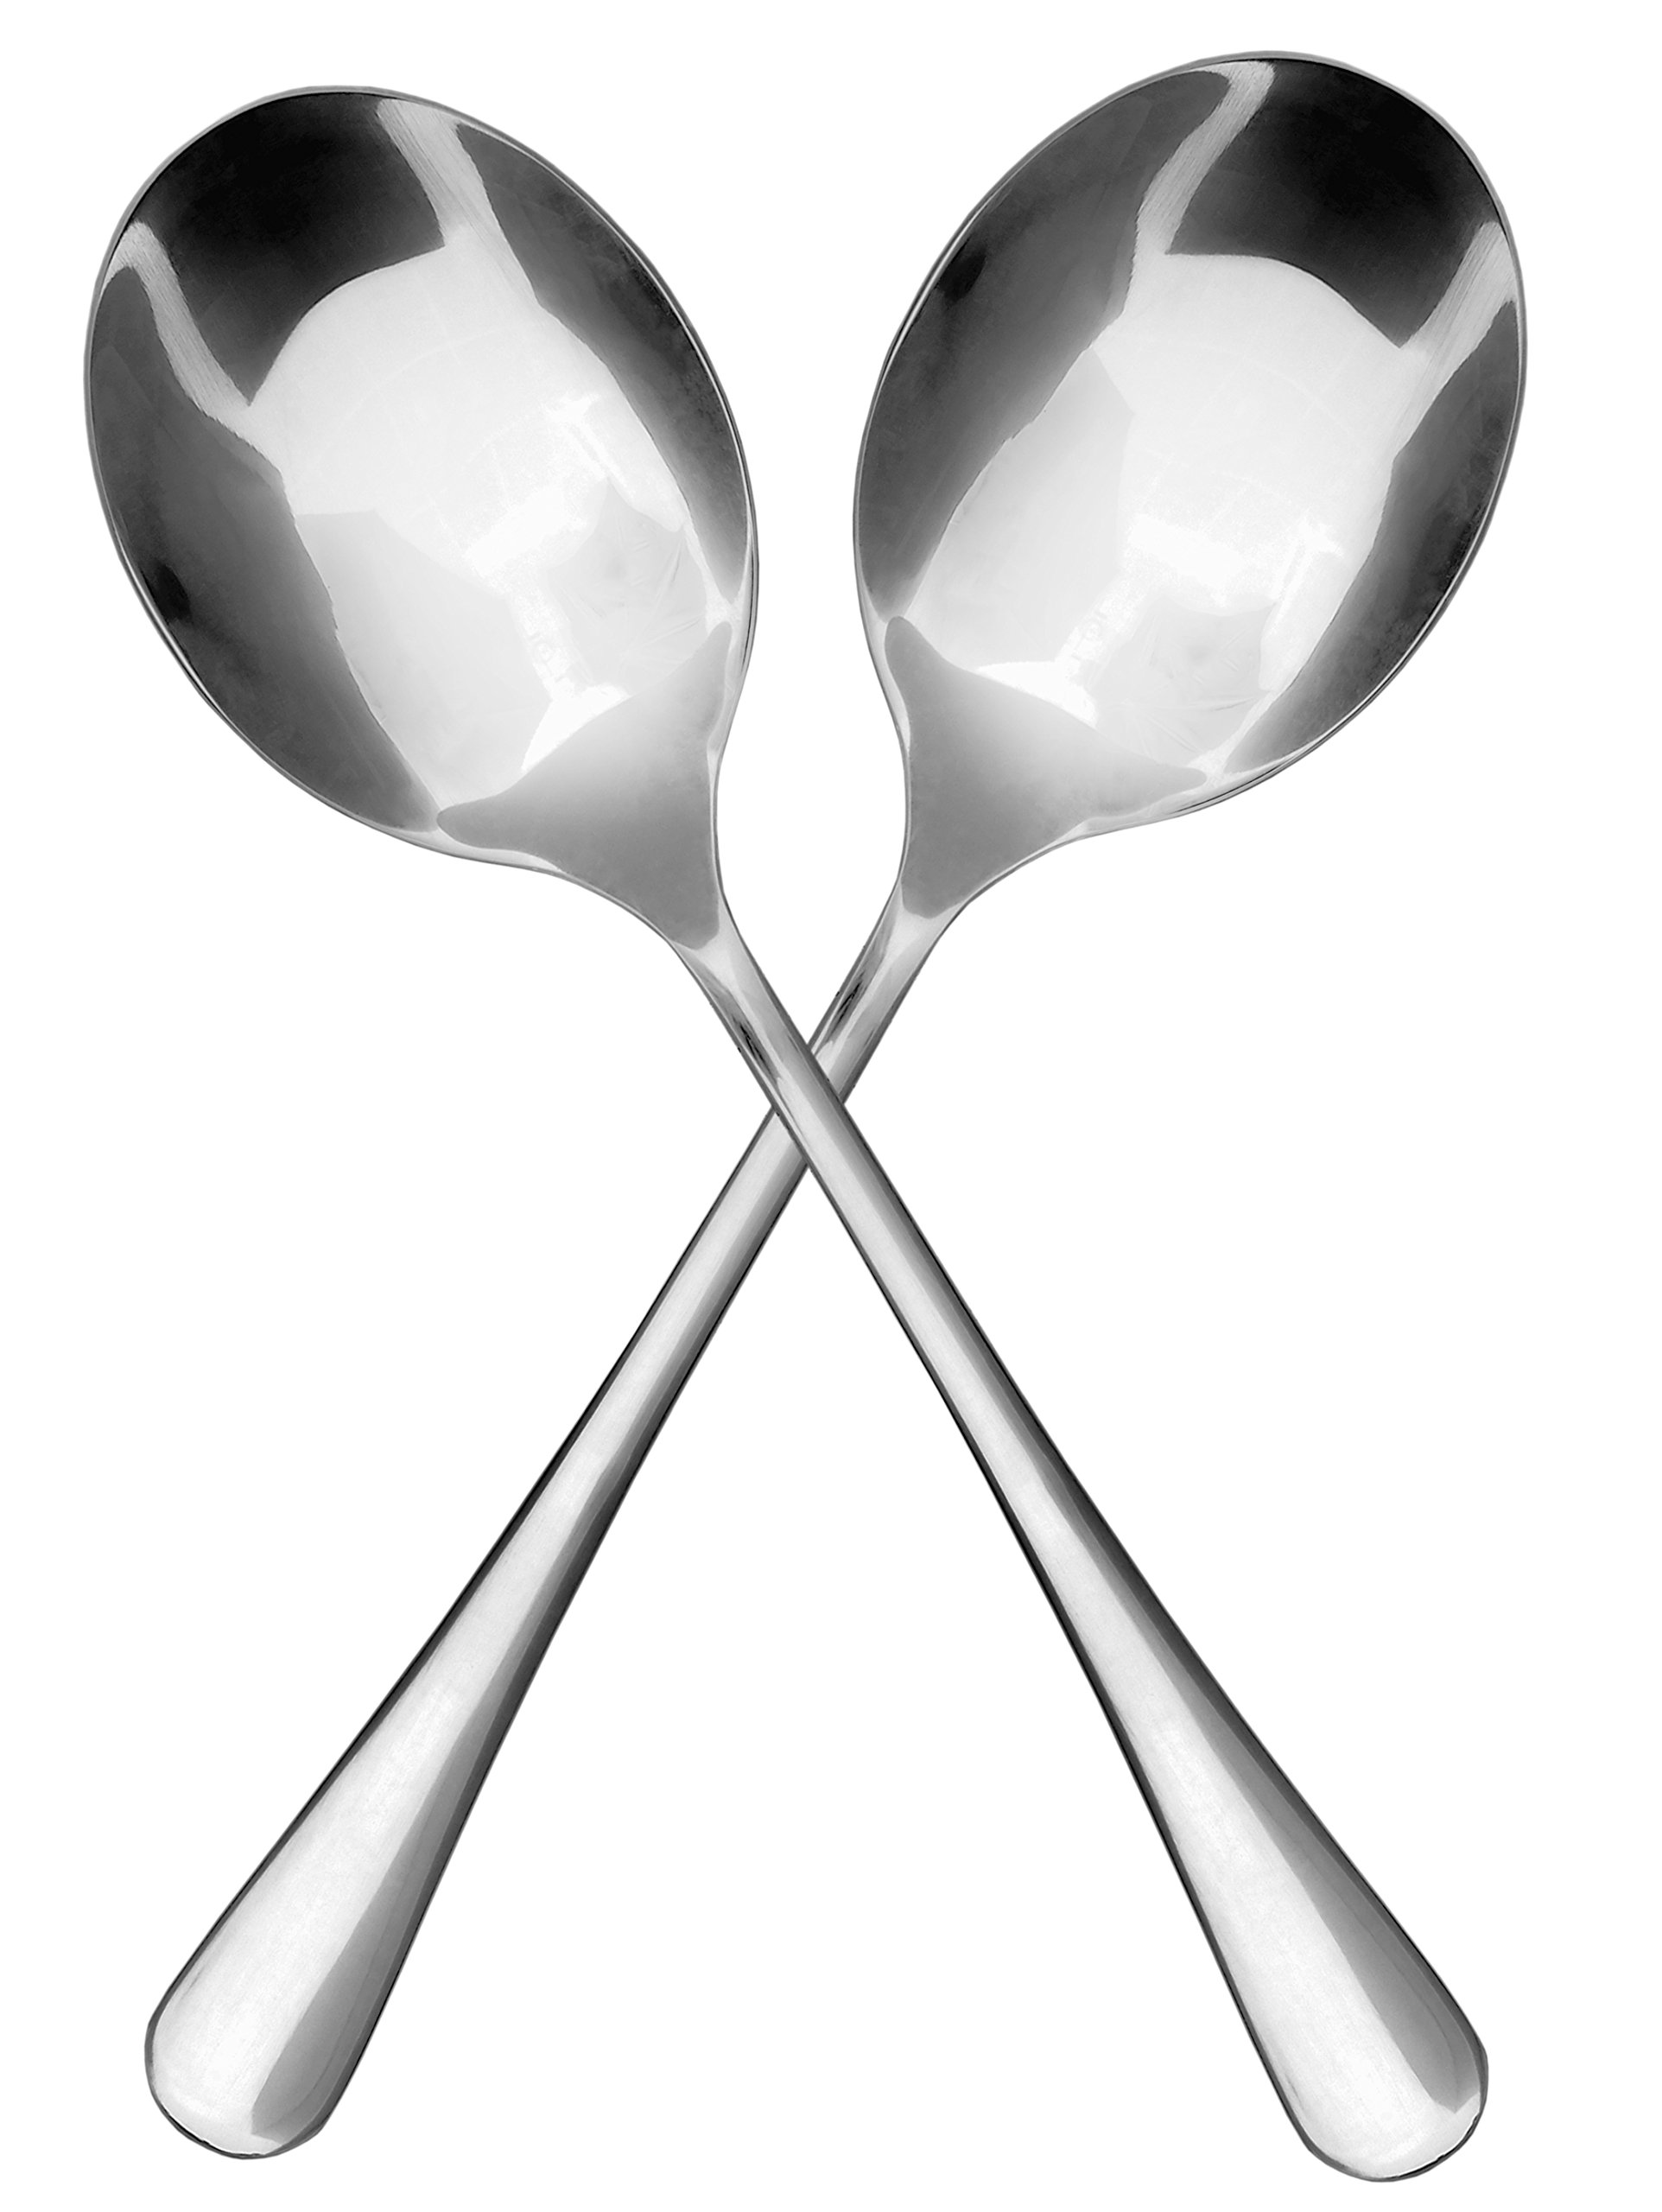 Stainless Steel X-Large Serving Spoons (2-Pack), Serving Utensil, Buffet & Banquet Style Serving Spoons-(2 Spoons) by Cornucopia Brands